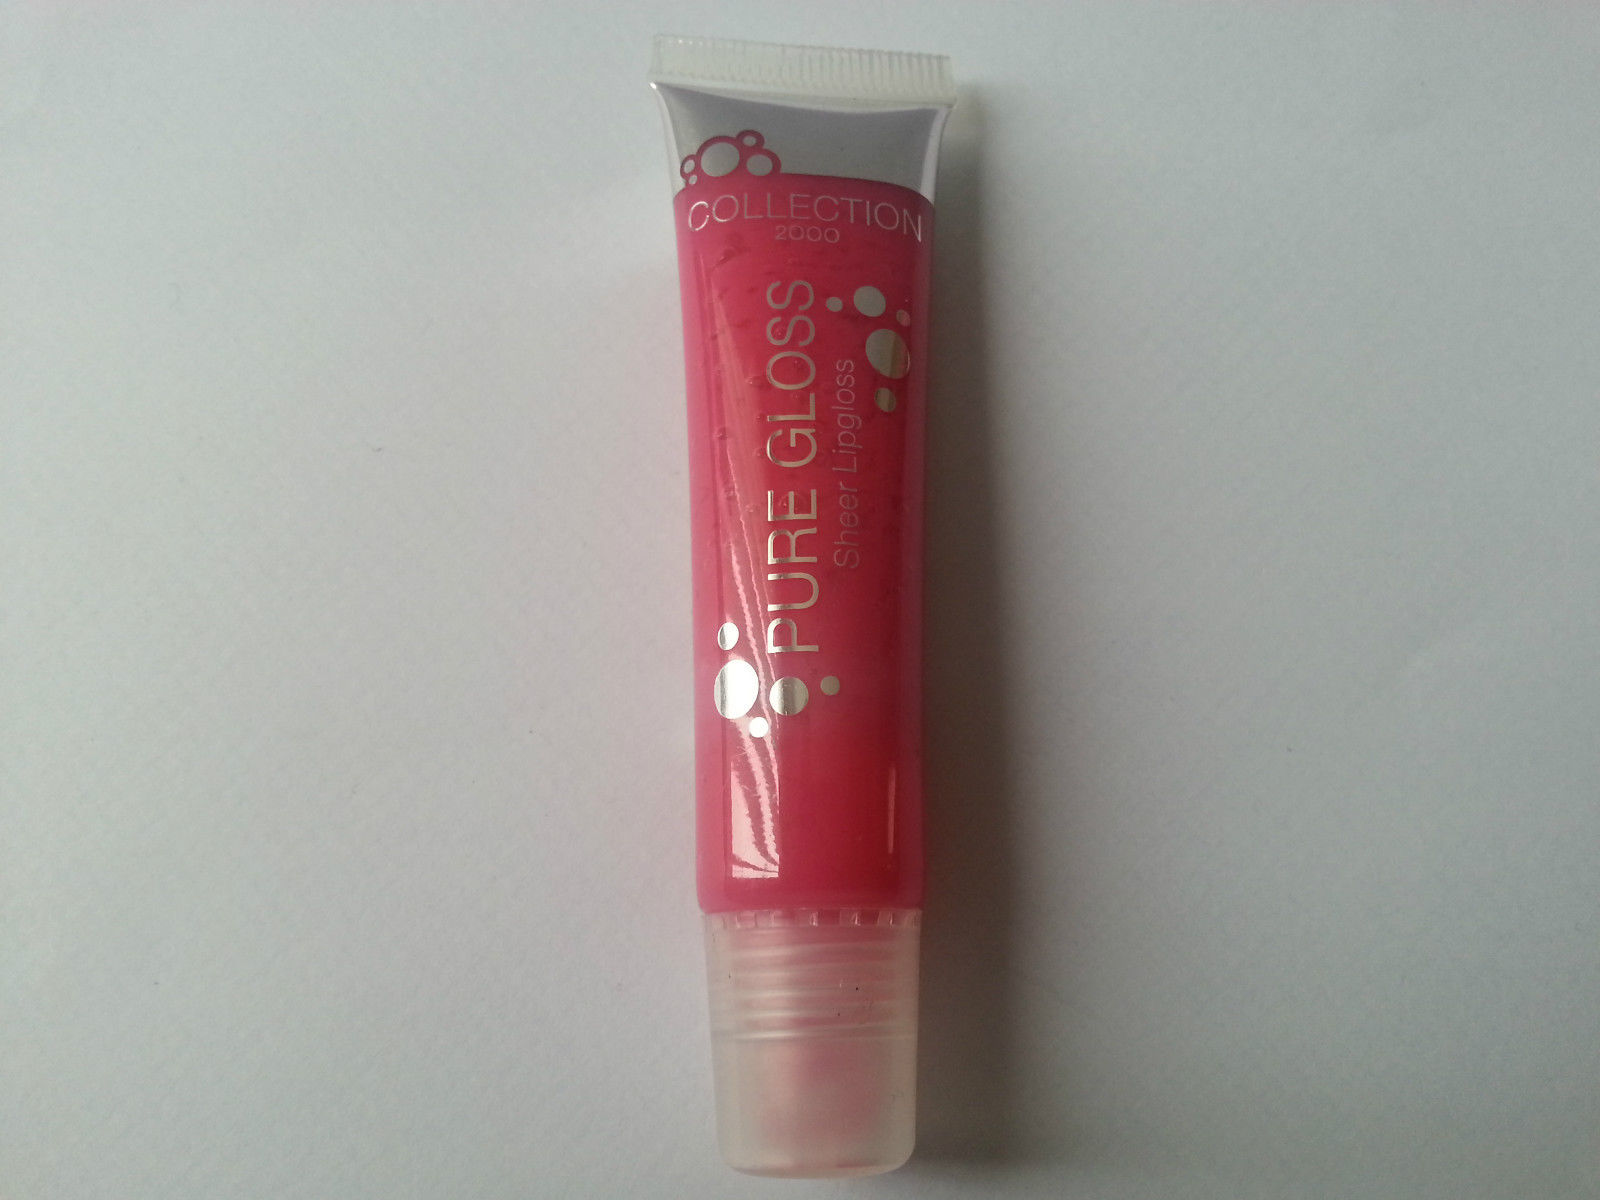 C2000 / COLLECTION 2000 PURE GLOSS SHEER LIPGLOSS - 2 LOLLIPOP